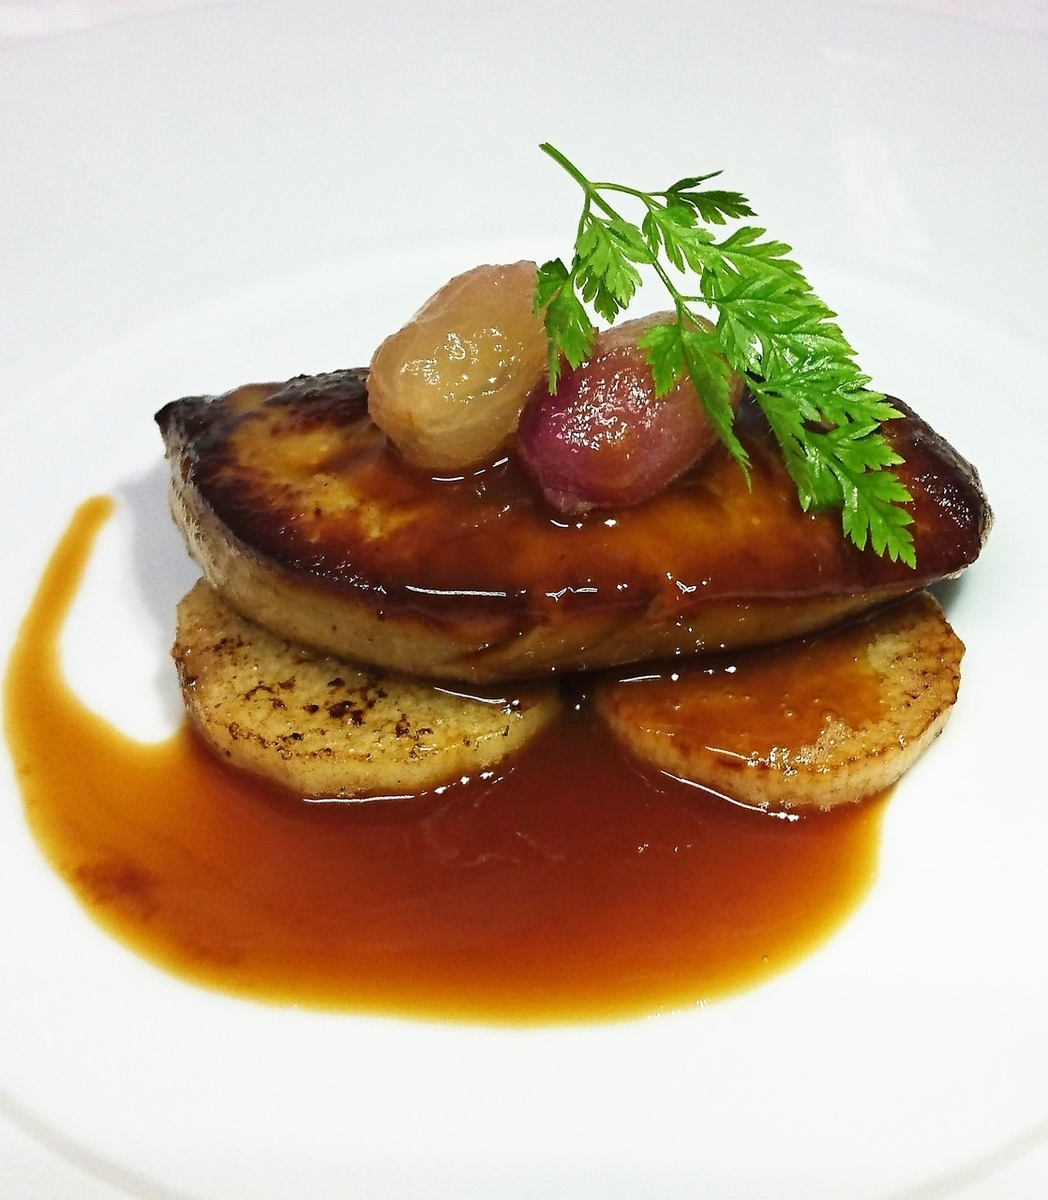 Steak of foie gras Fireweed sauce with sautéed sauce of yam